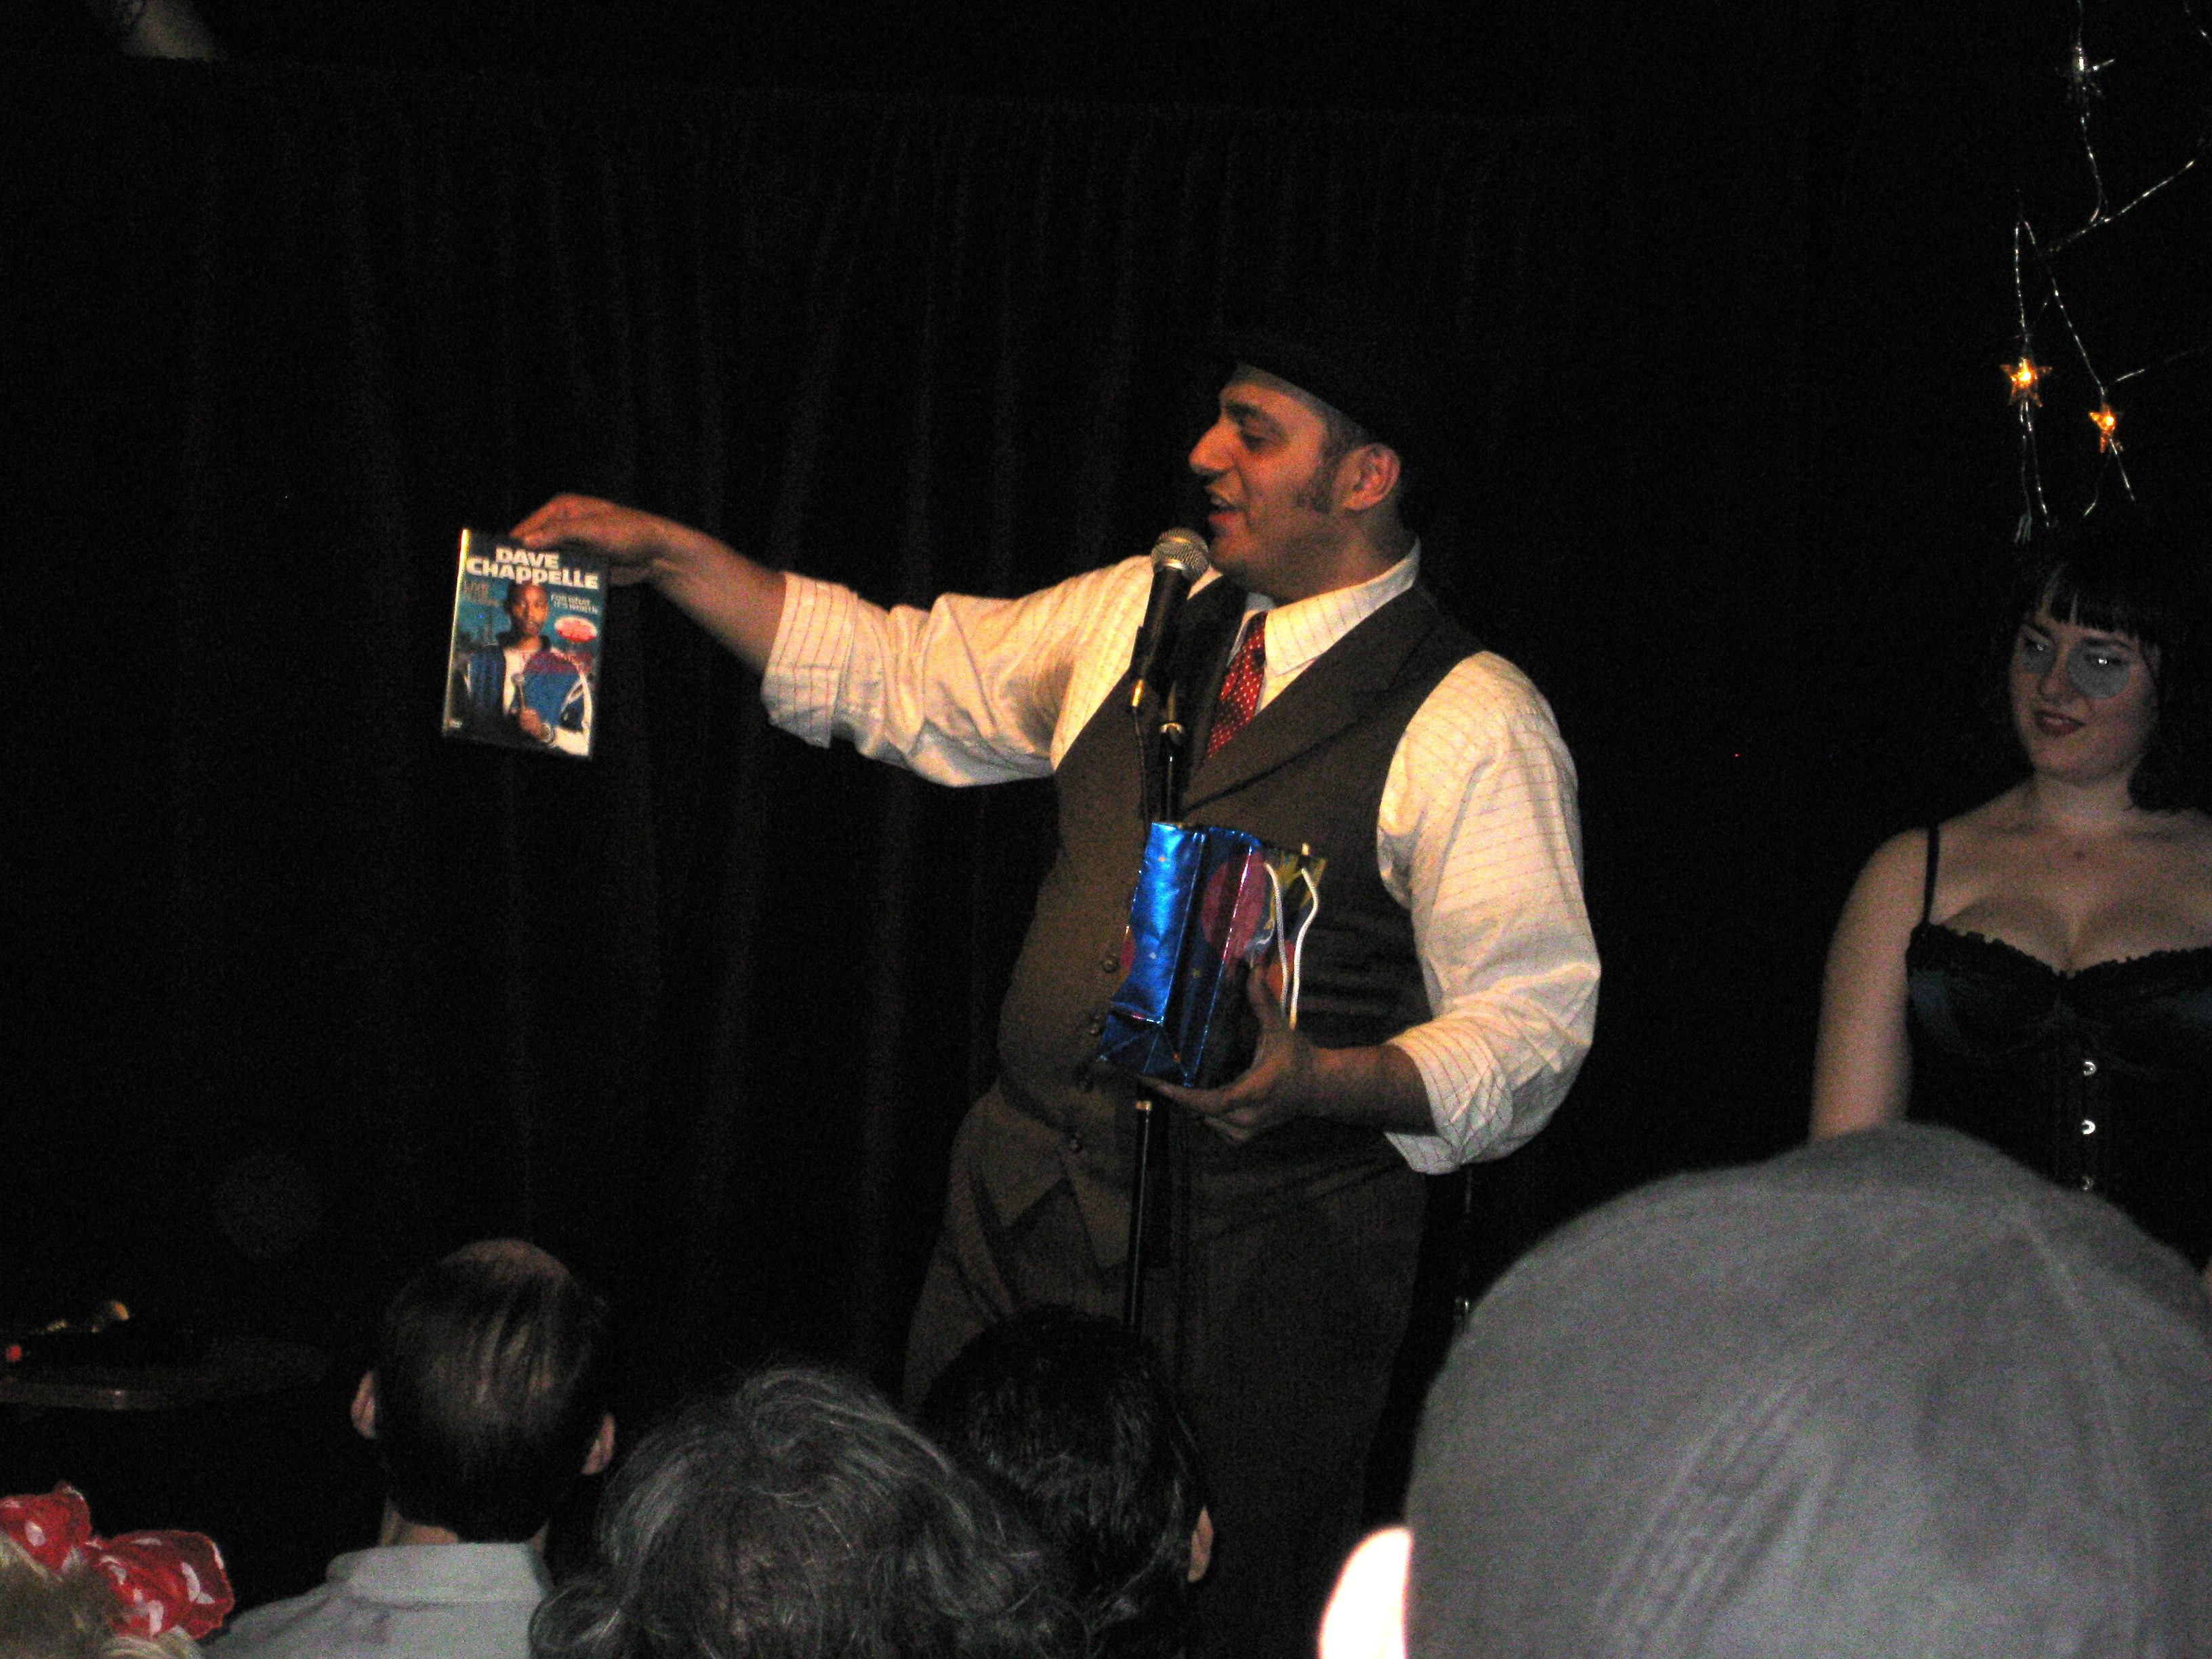 Nelson Lugo showing off a copy of Dave Chapelle Live at the Filmore